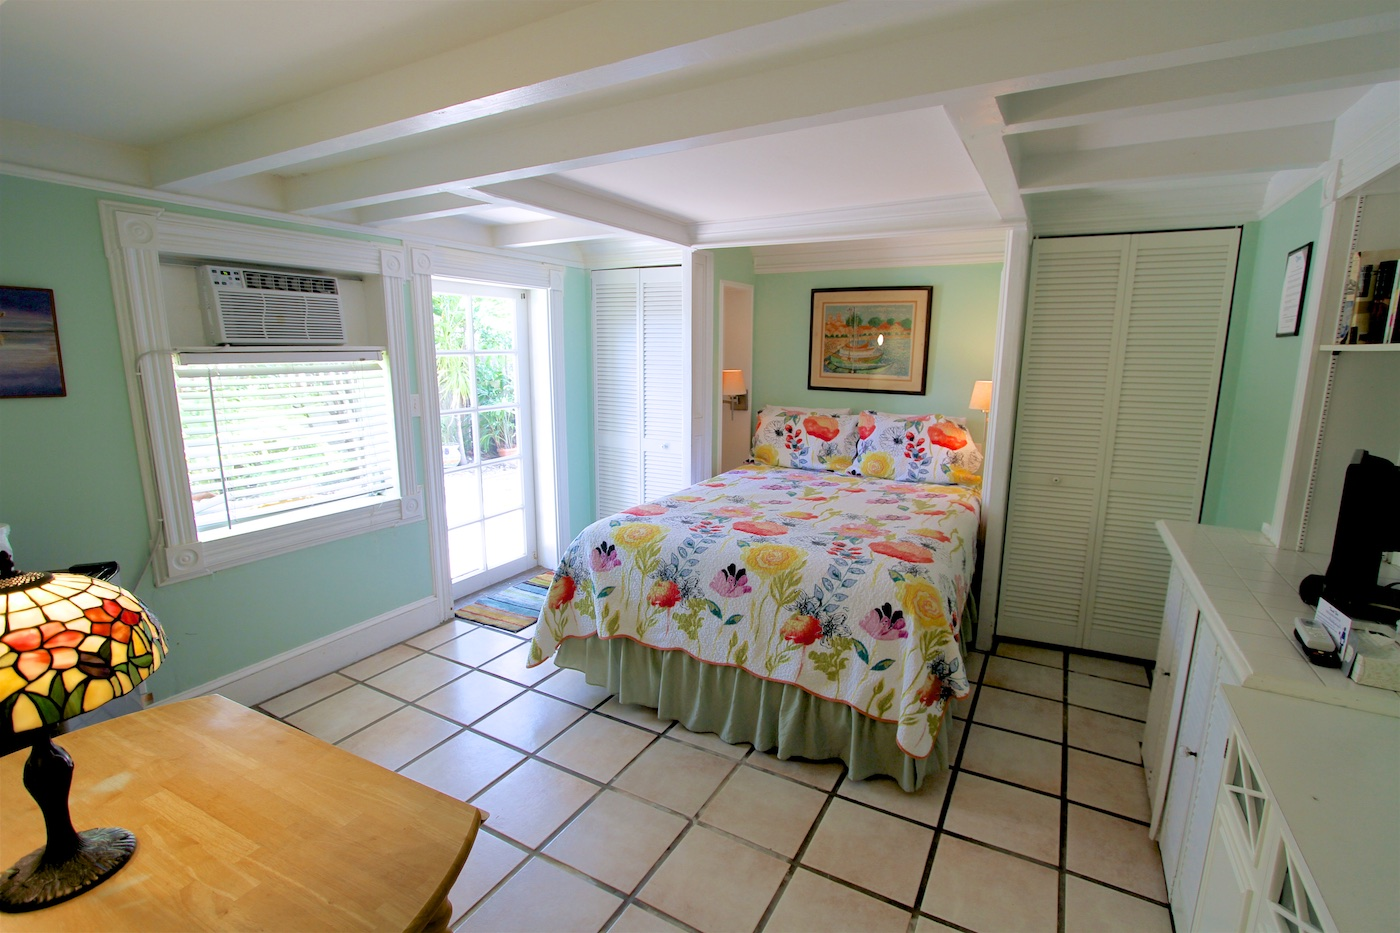 ARTIST - ⇨ Sleeps 2Queen bed with private bathroom. Indoor seating. Enjoy the afternoon sun, the room opens onto outdoor seating.Ground Floor